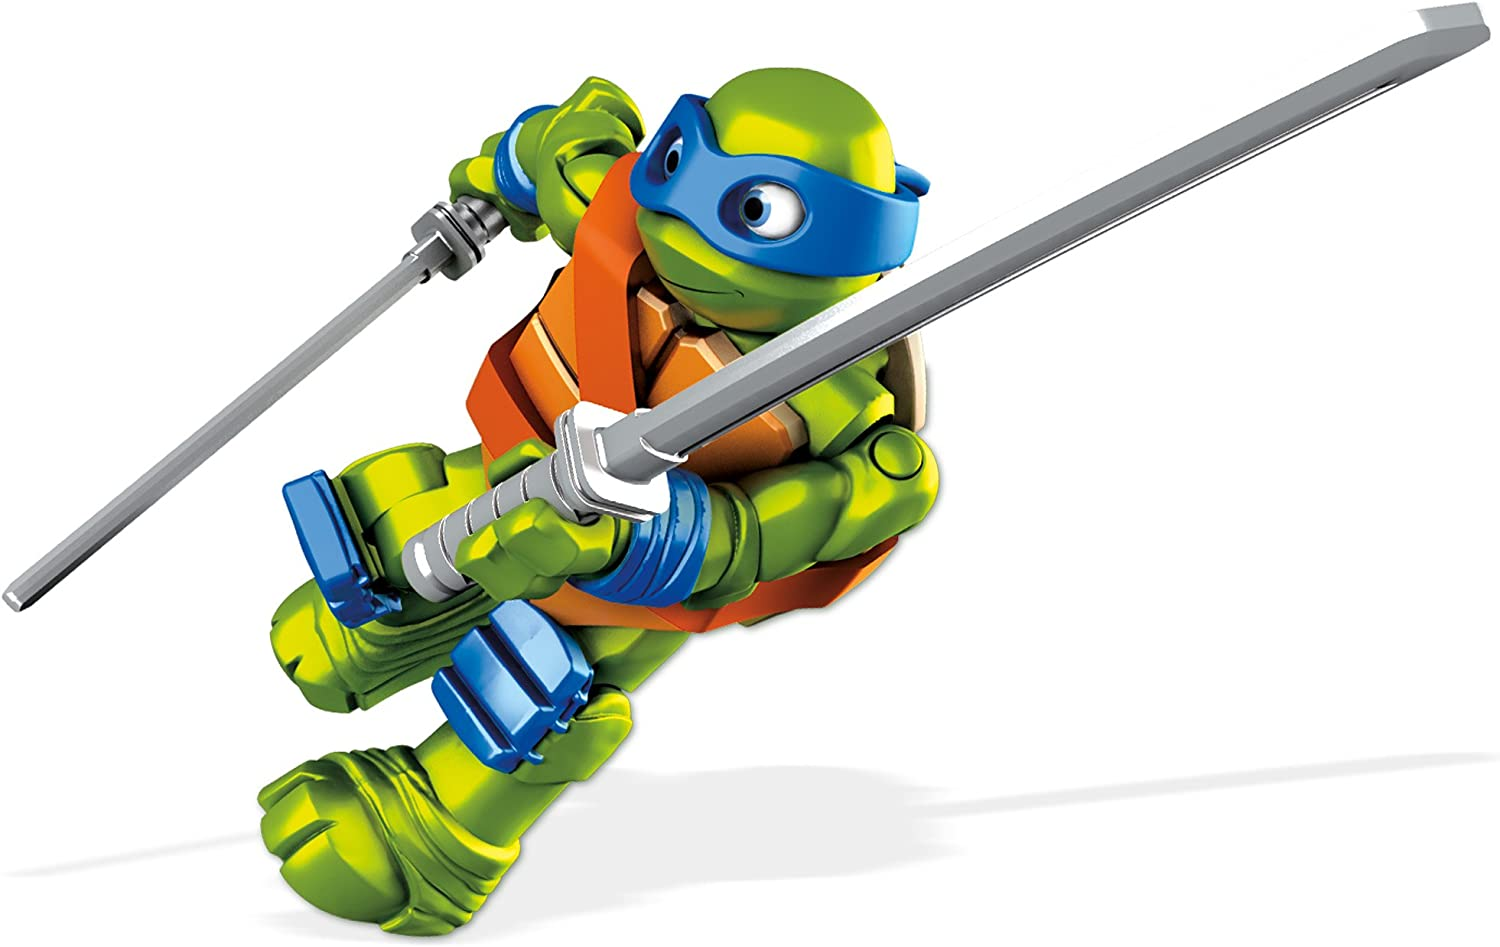 Amazon.com: Mega Construx Teenage Mutant Ninja Turtles Ninja ...